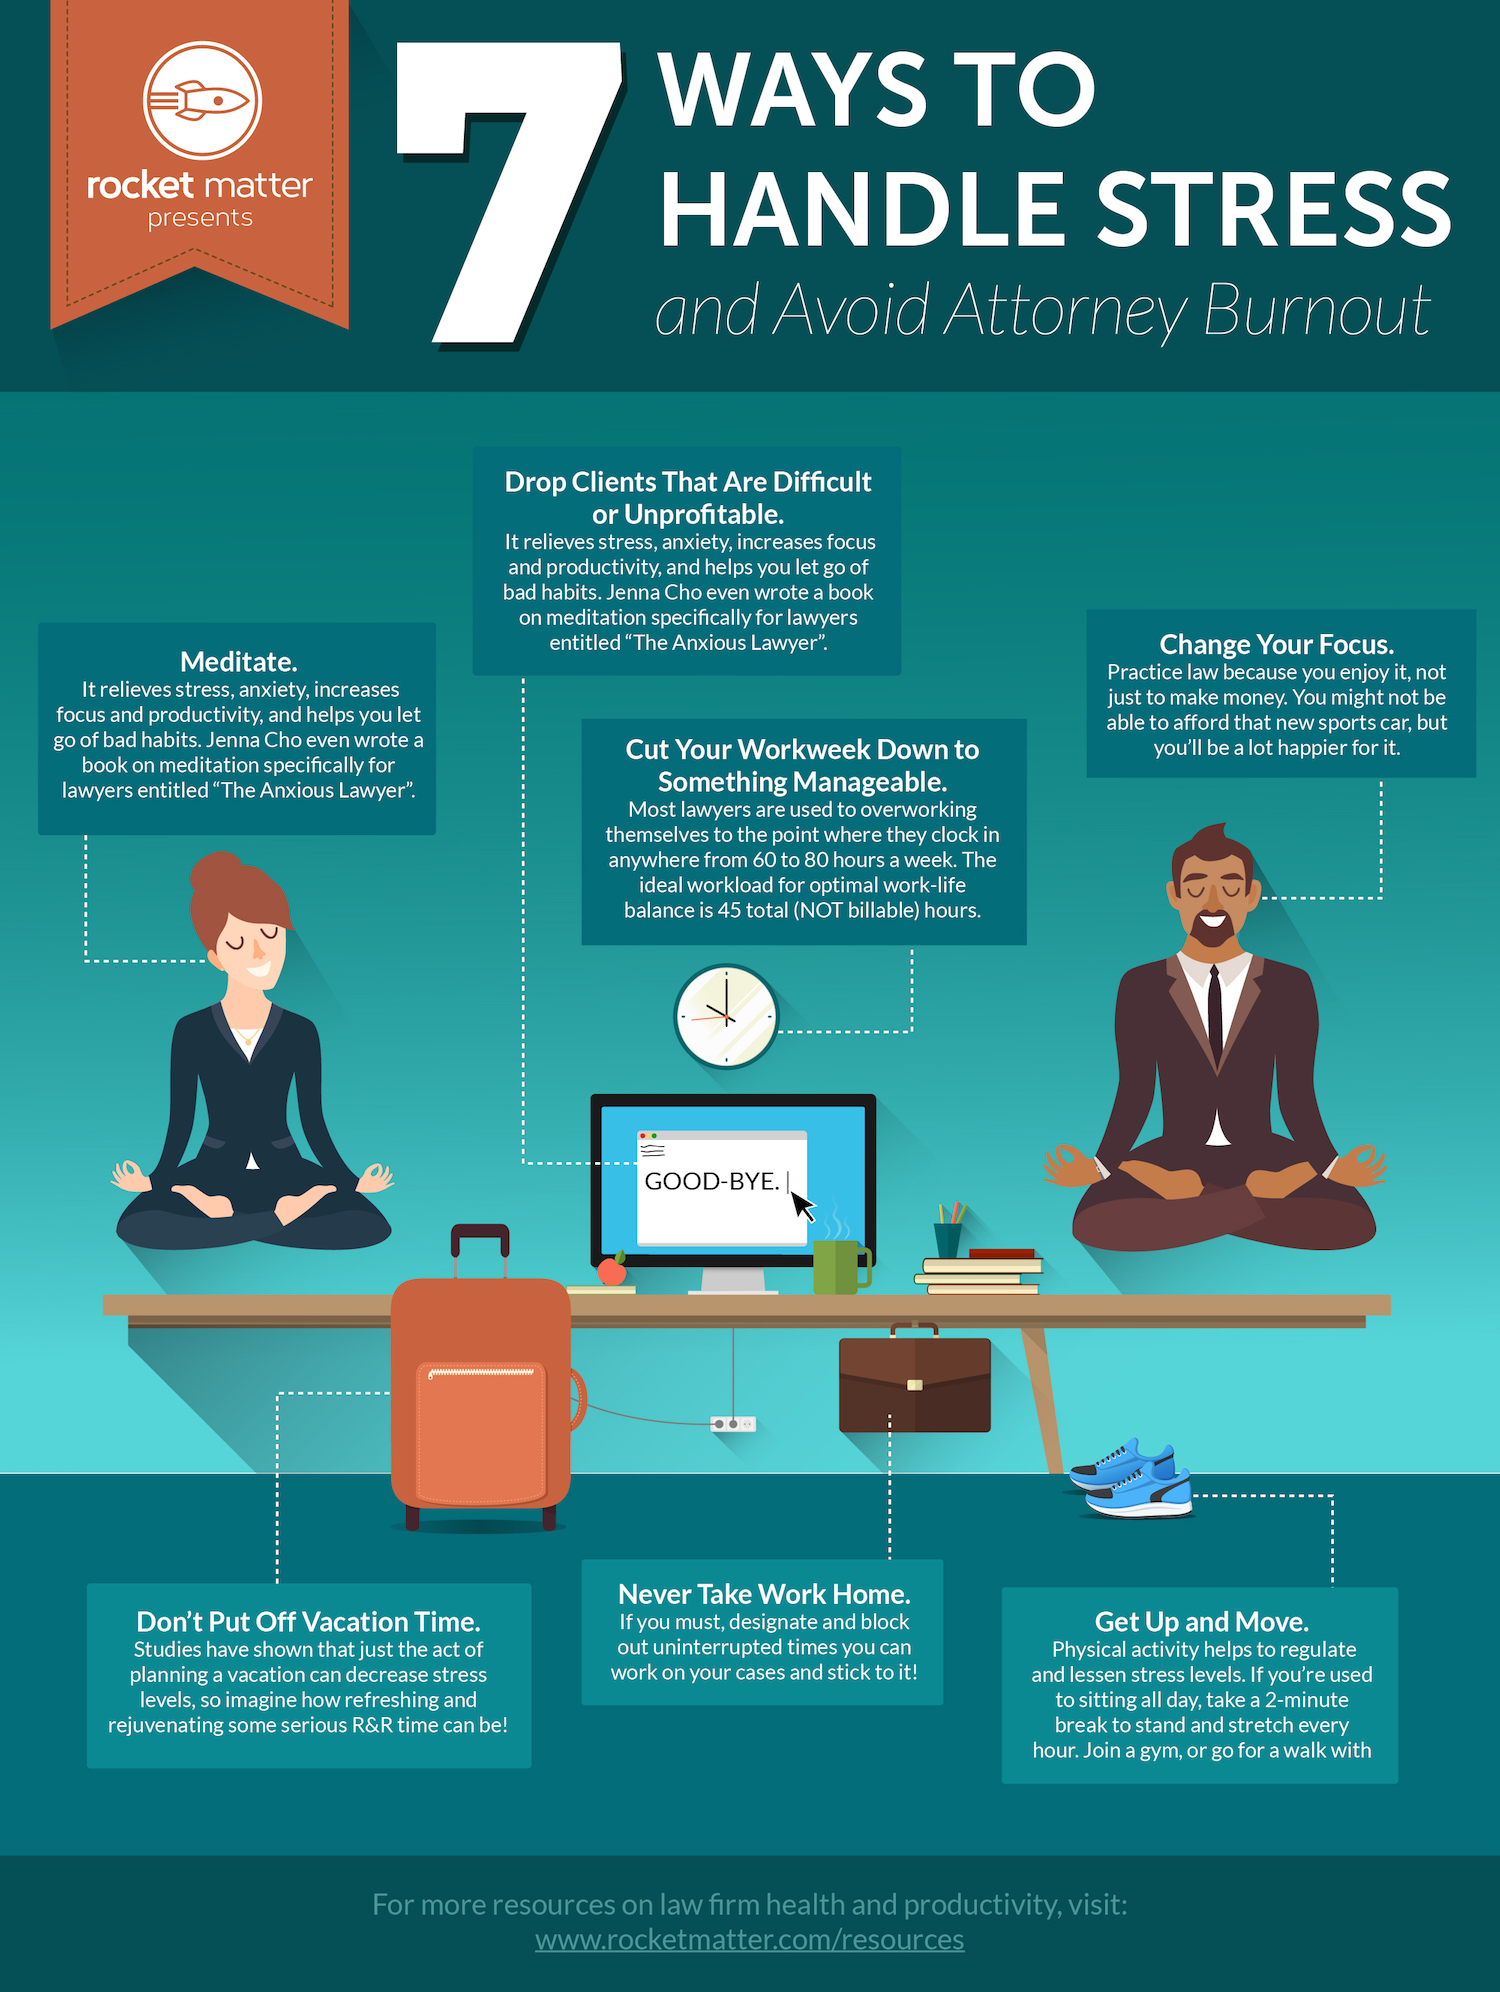 How an Attorney can Handle Too Much Stress – MASTERING THE LAW COURSE